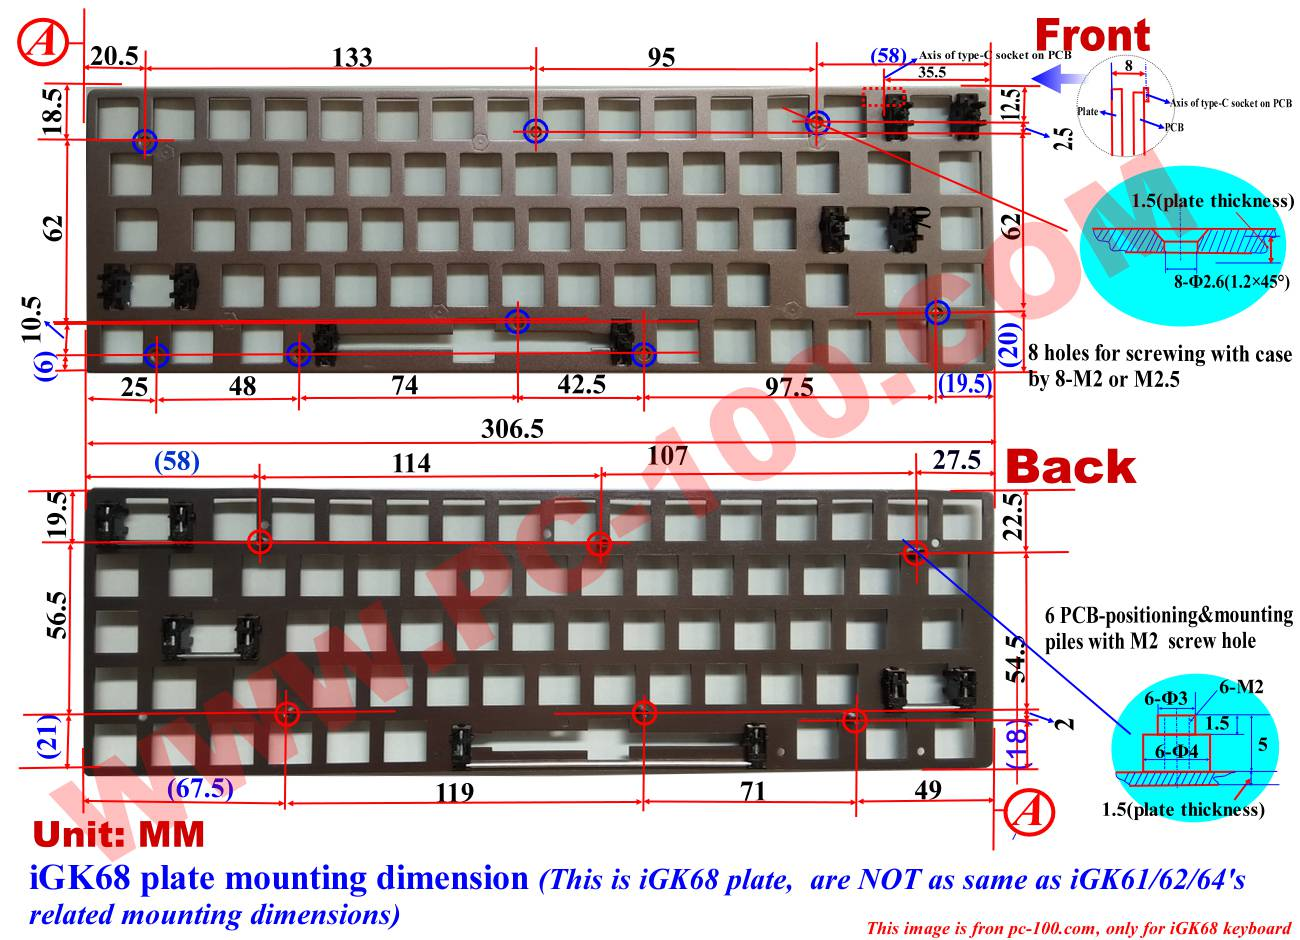 iGK68 (GK68) mechanical keyboard plate's mounting dimension